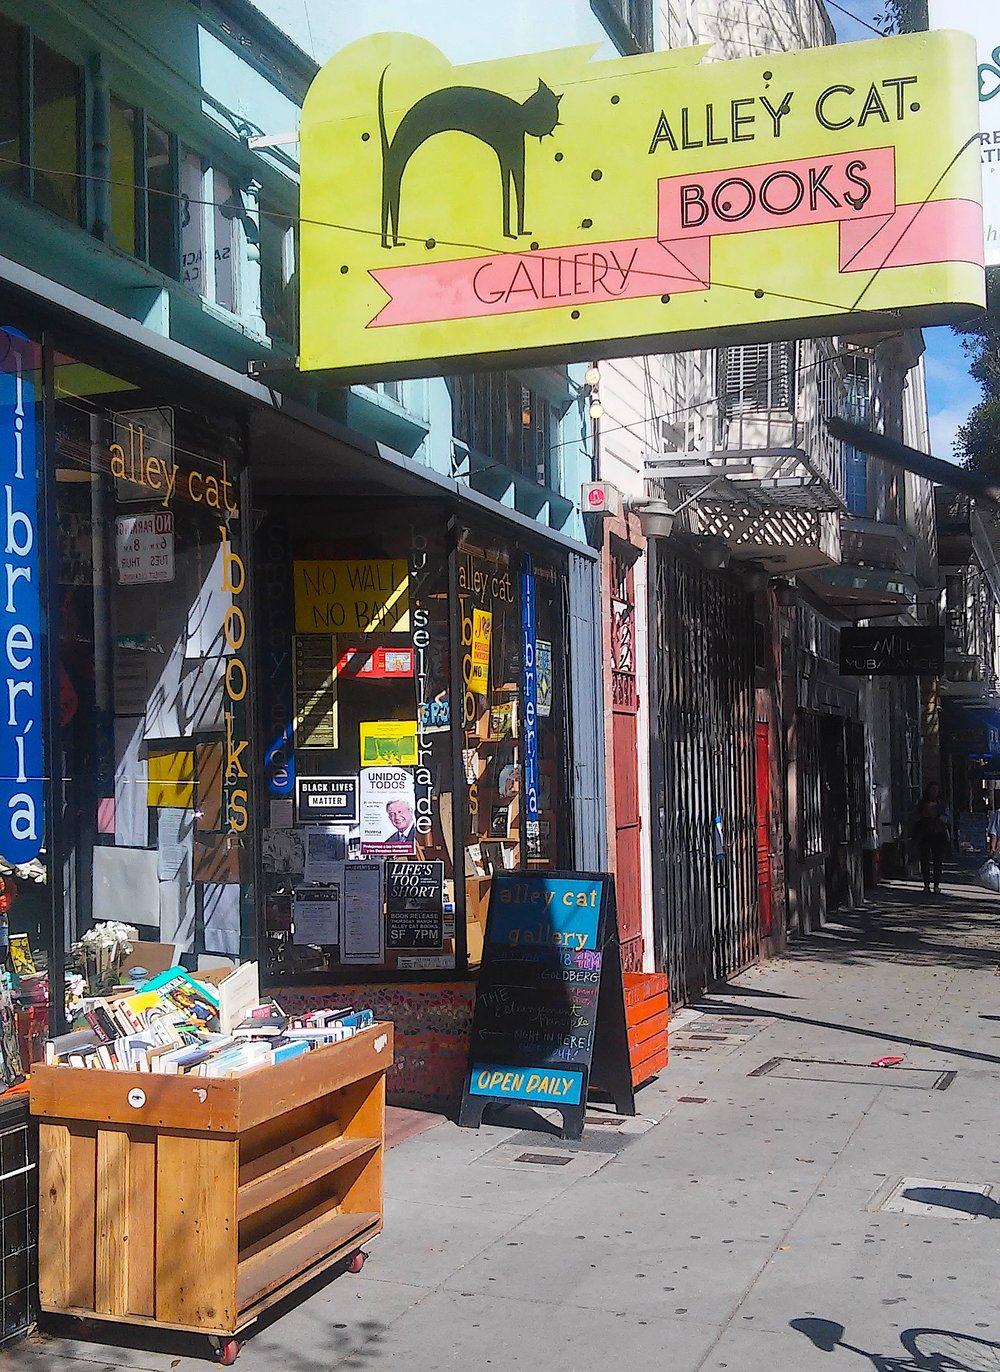 alley-cat-books